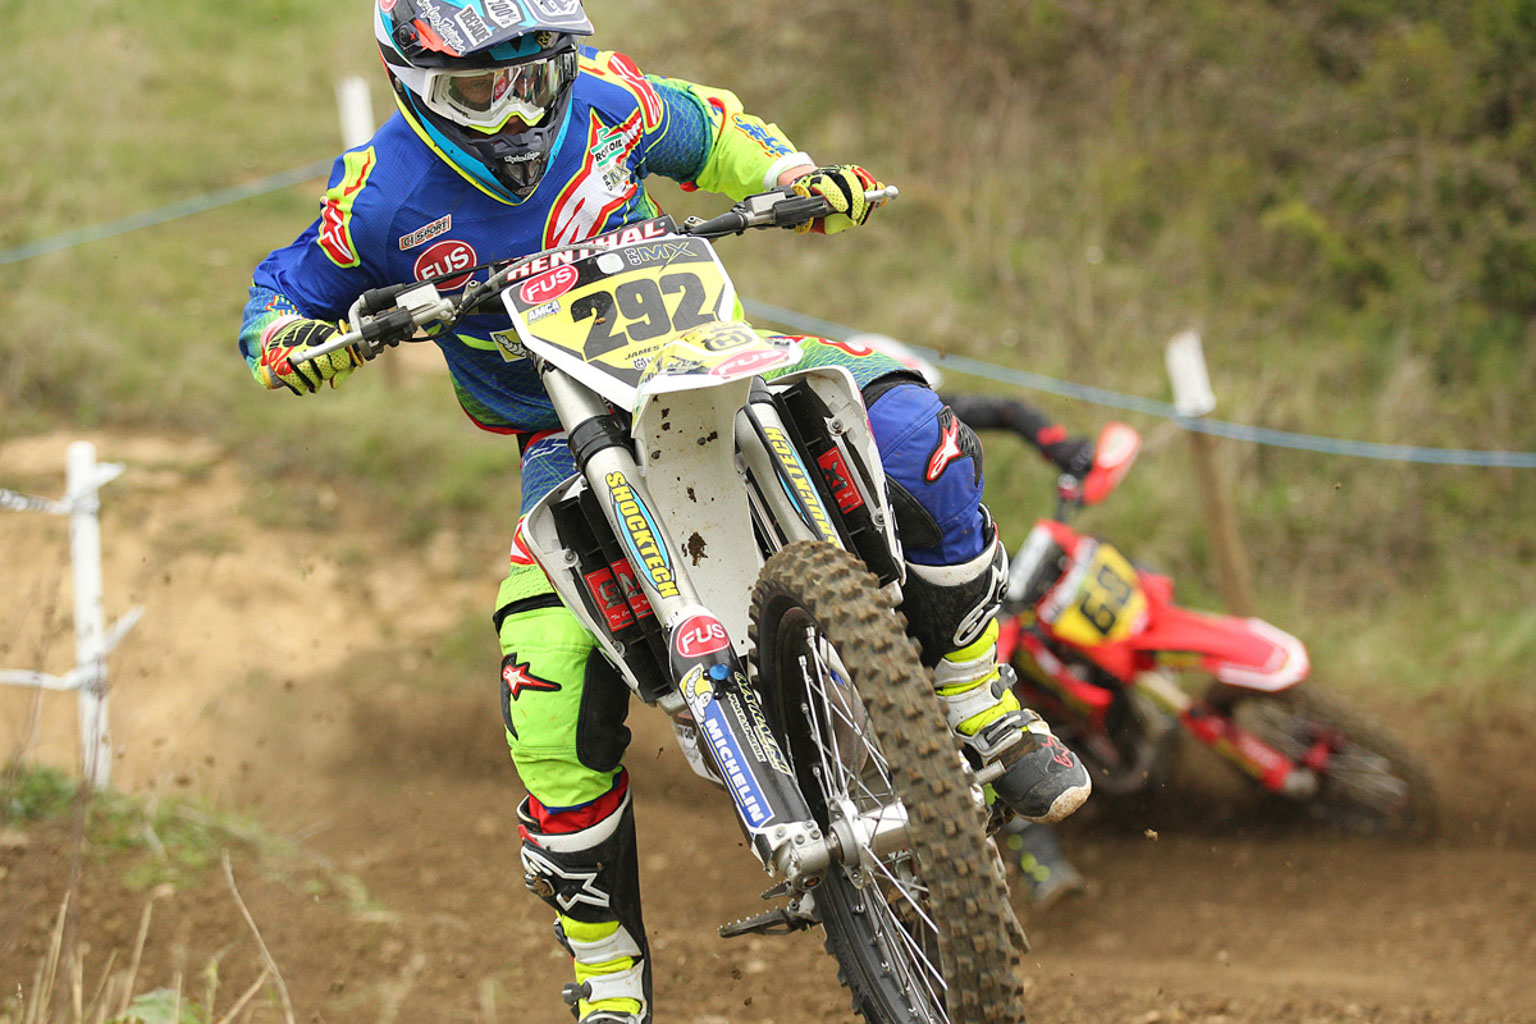 James Dodd leading Shane Carless in MX1